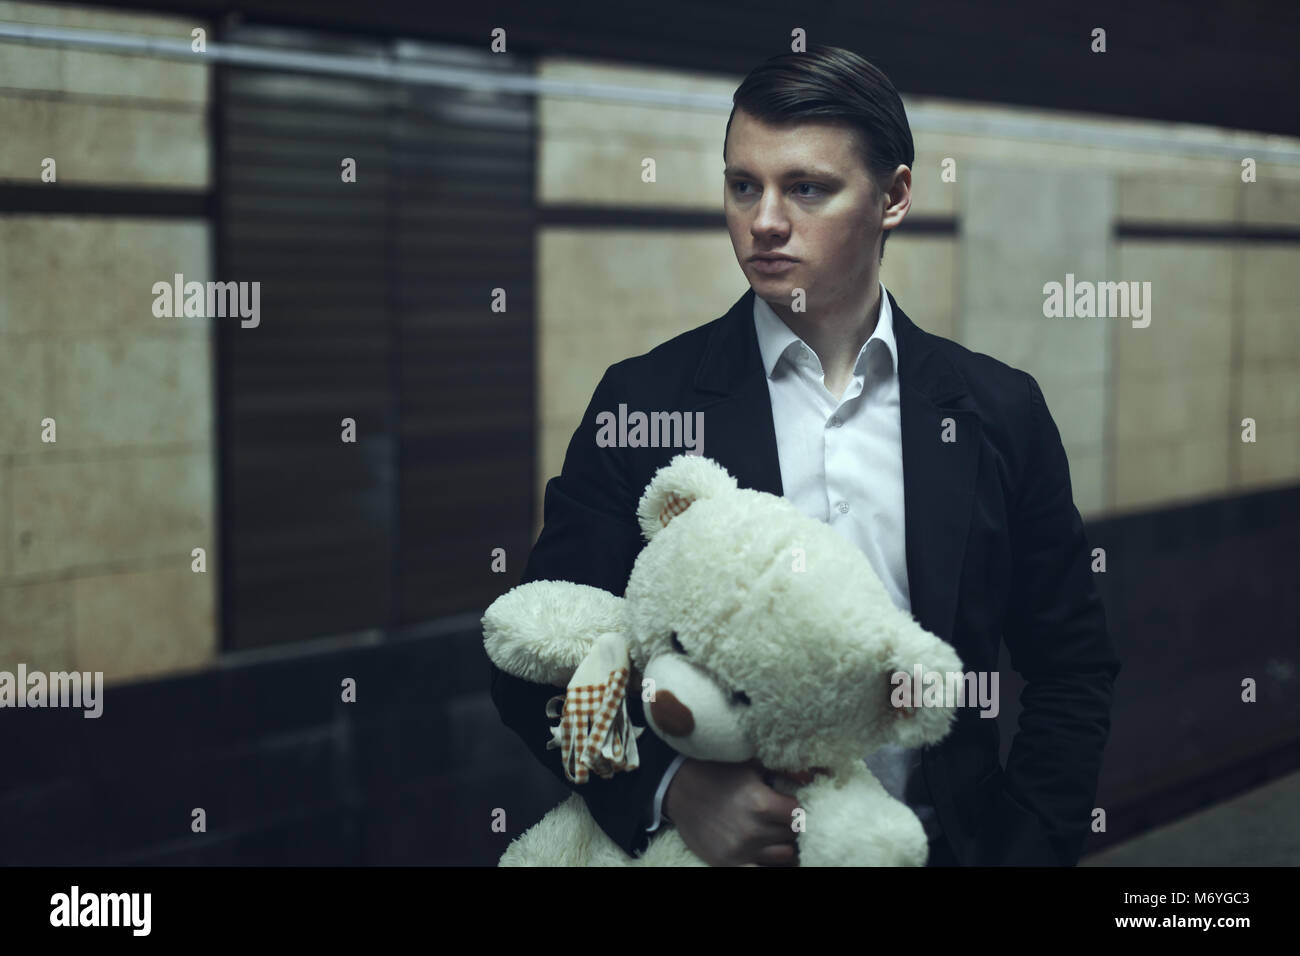 Sad young guy holds a stuffed toy and waits for a lover. - Stock Image